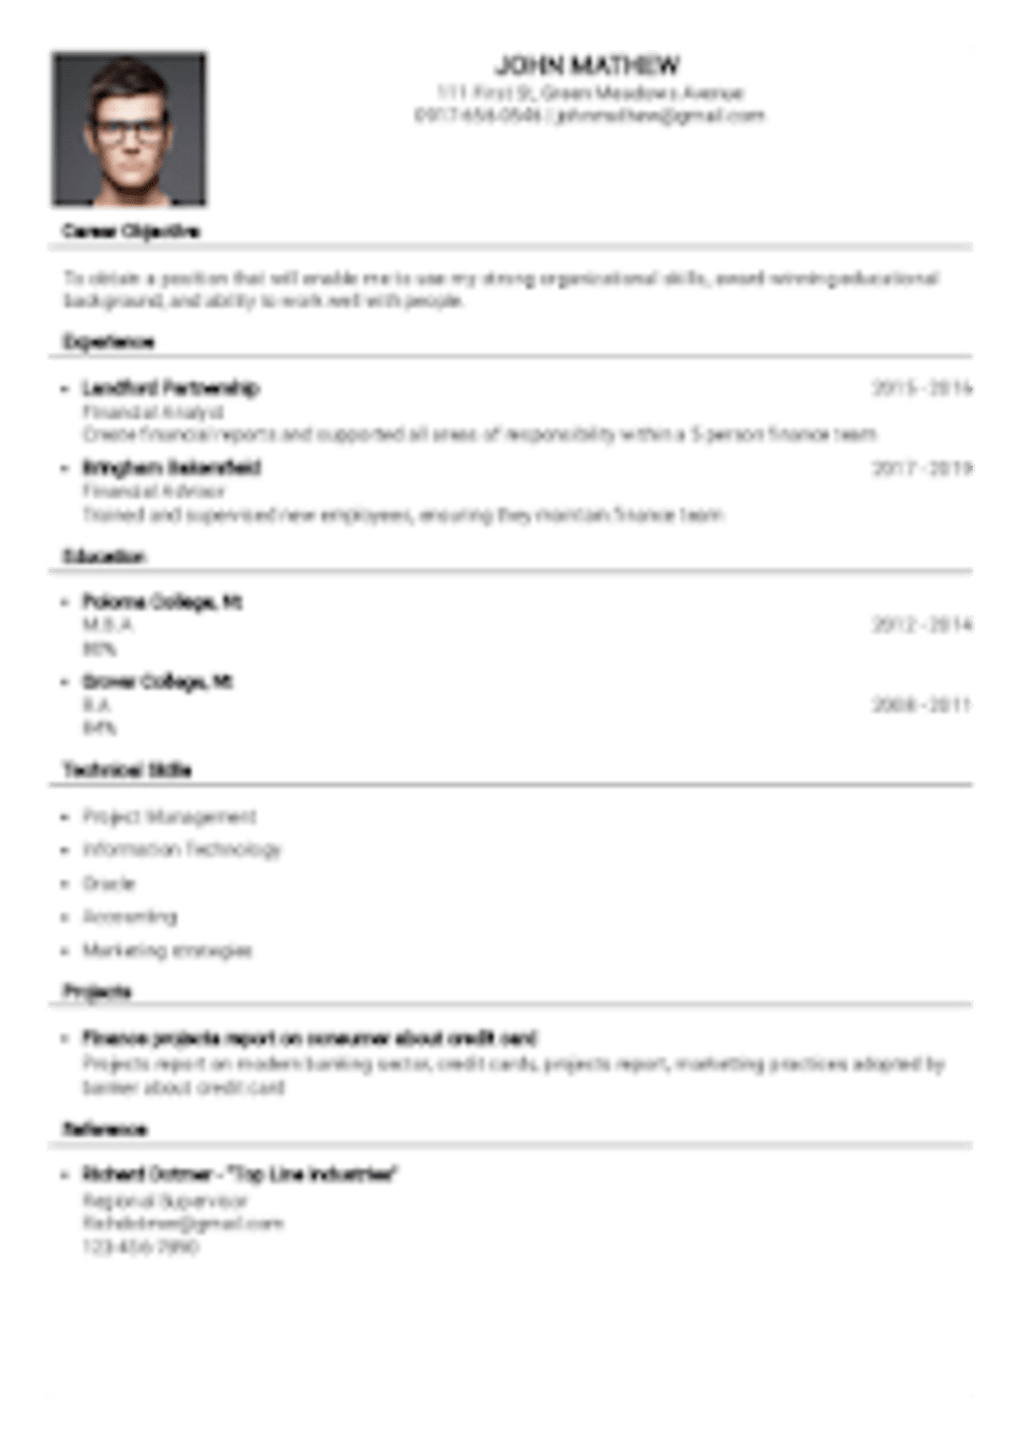 resume builder cv maker app free cv templates 2019 for